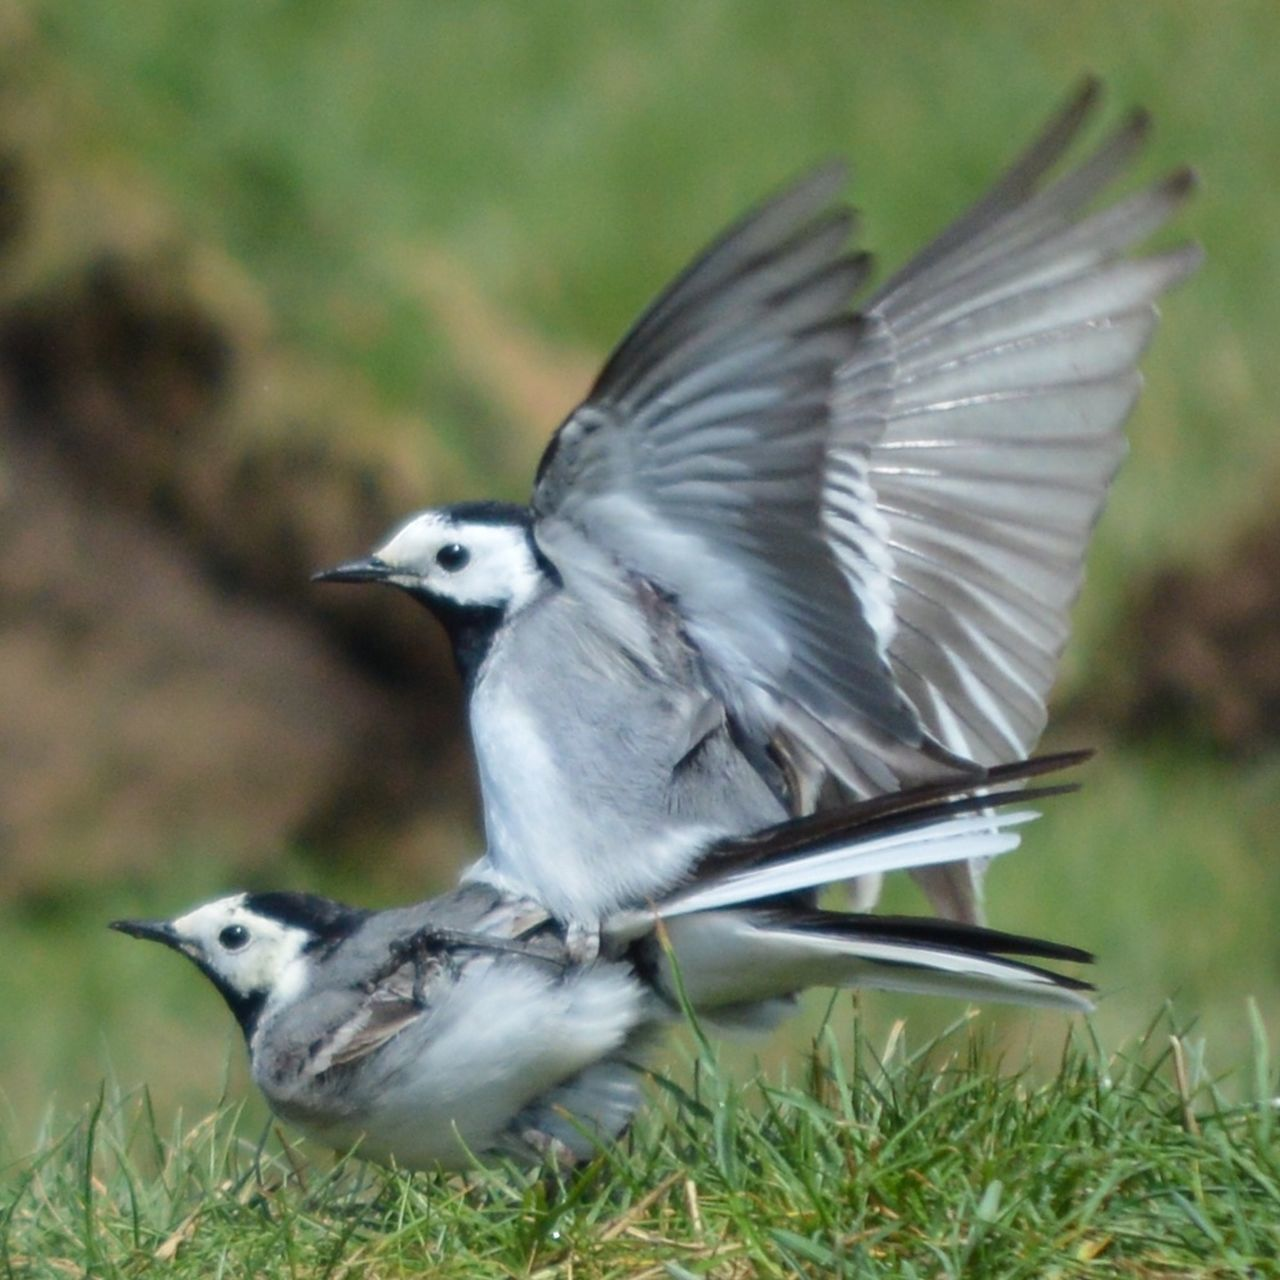 Animal Themes Animal Wildlife Animals In The Wild Beauty In Nature Bird Bird Mating Close-up Day Field Grass Mating Mating Pair Of Bird Nature No People One Animal Outdoors Spread Wings